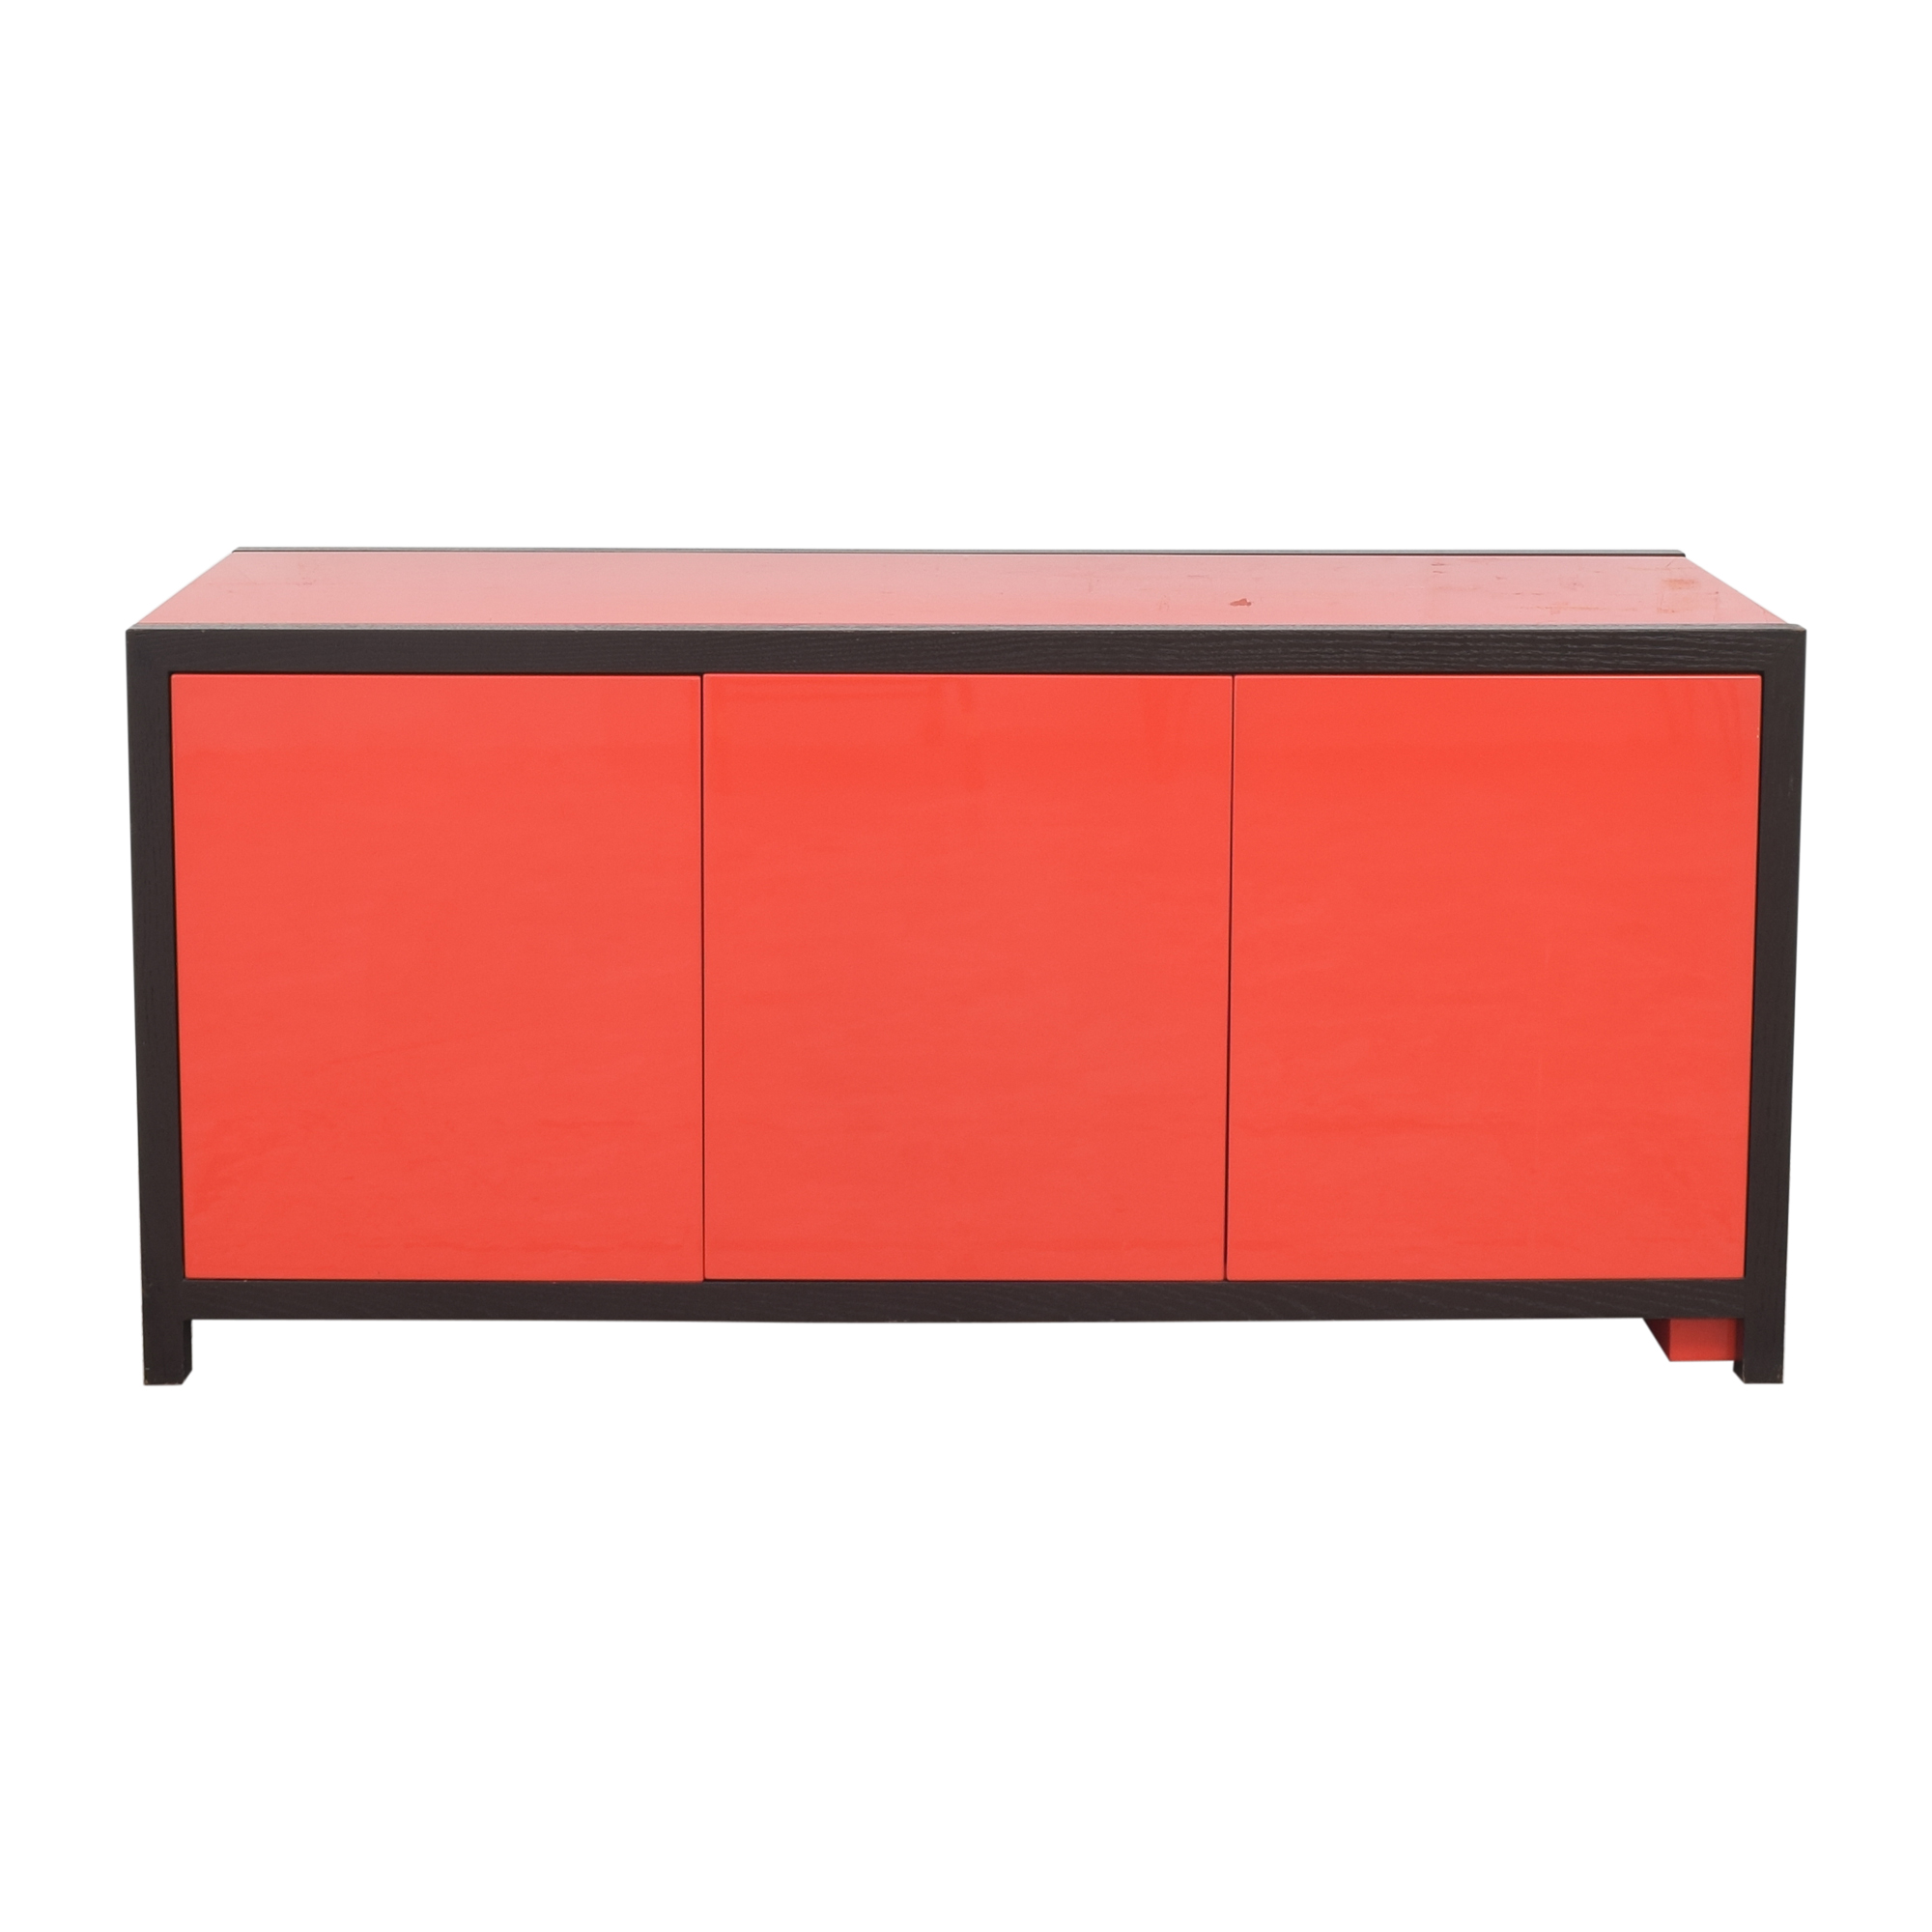 Dune Dune Lemans Sideboard with Extendable Desk red